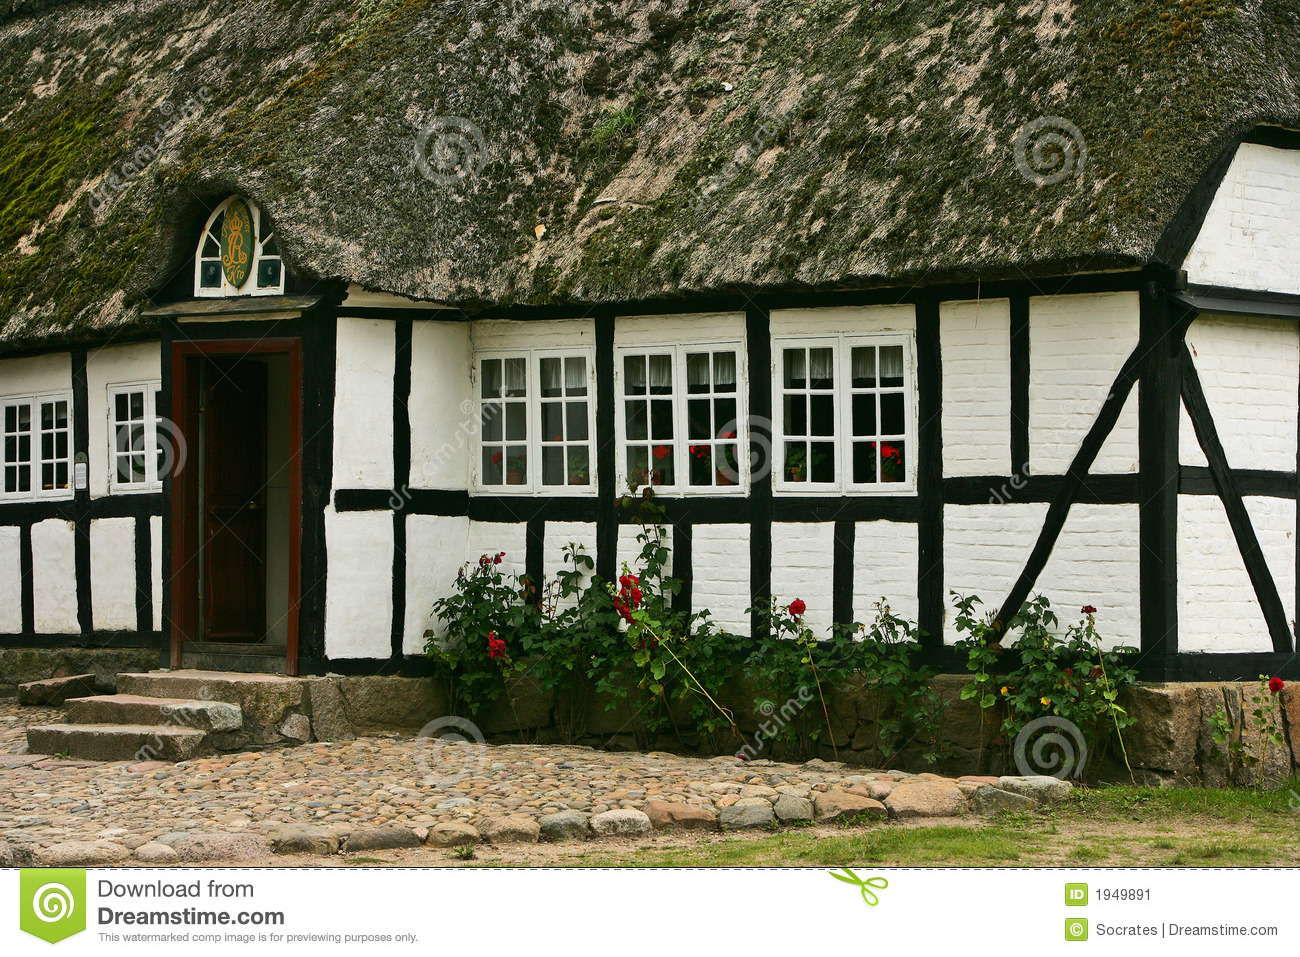 Old house from 1700